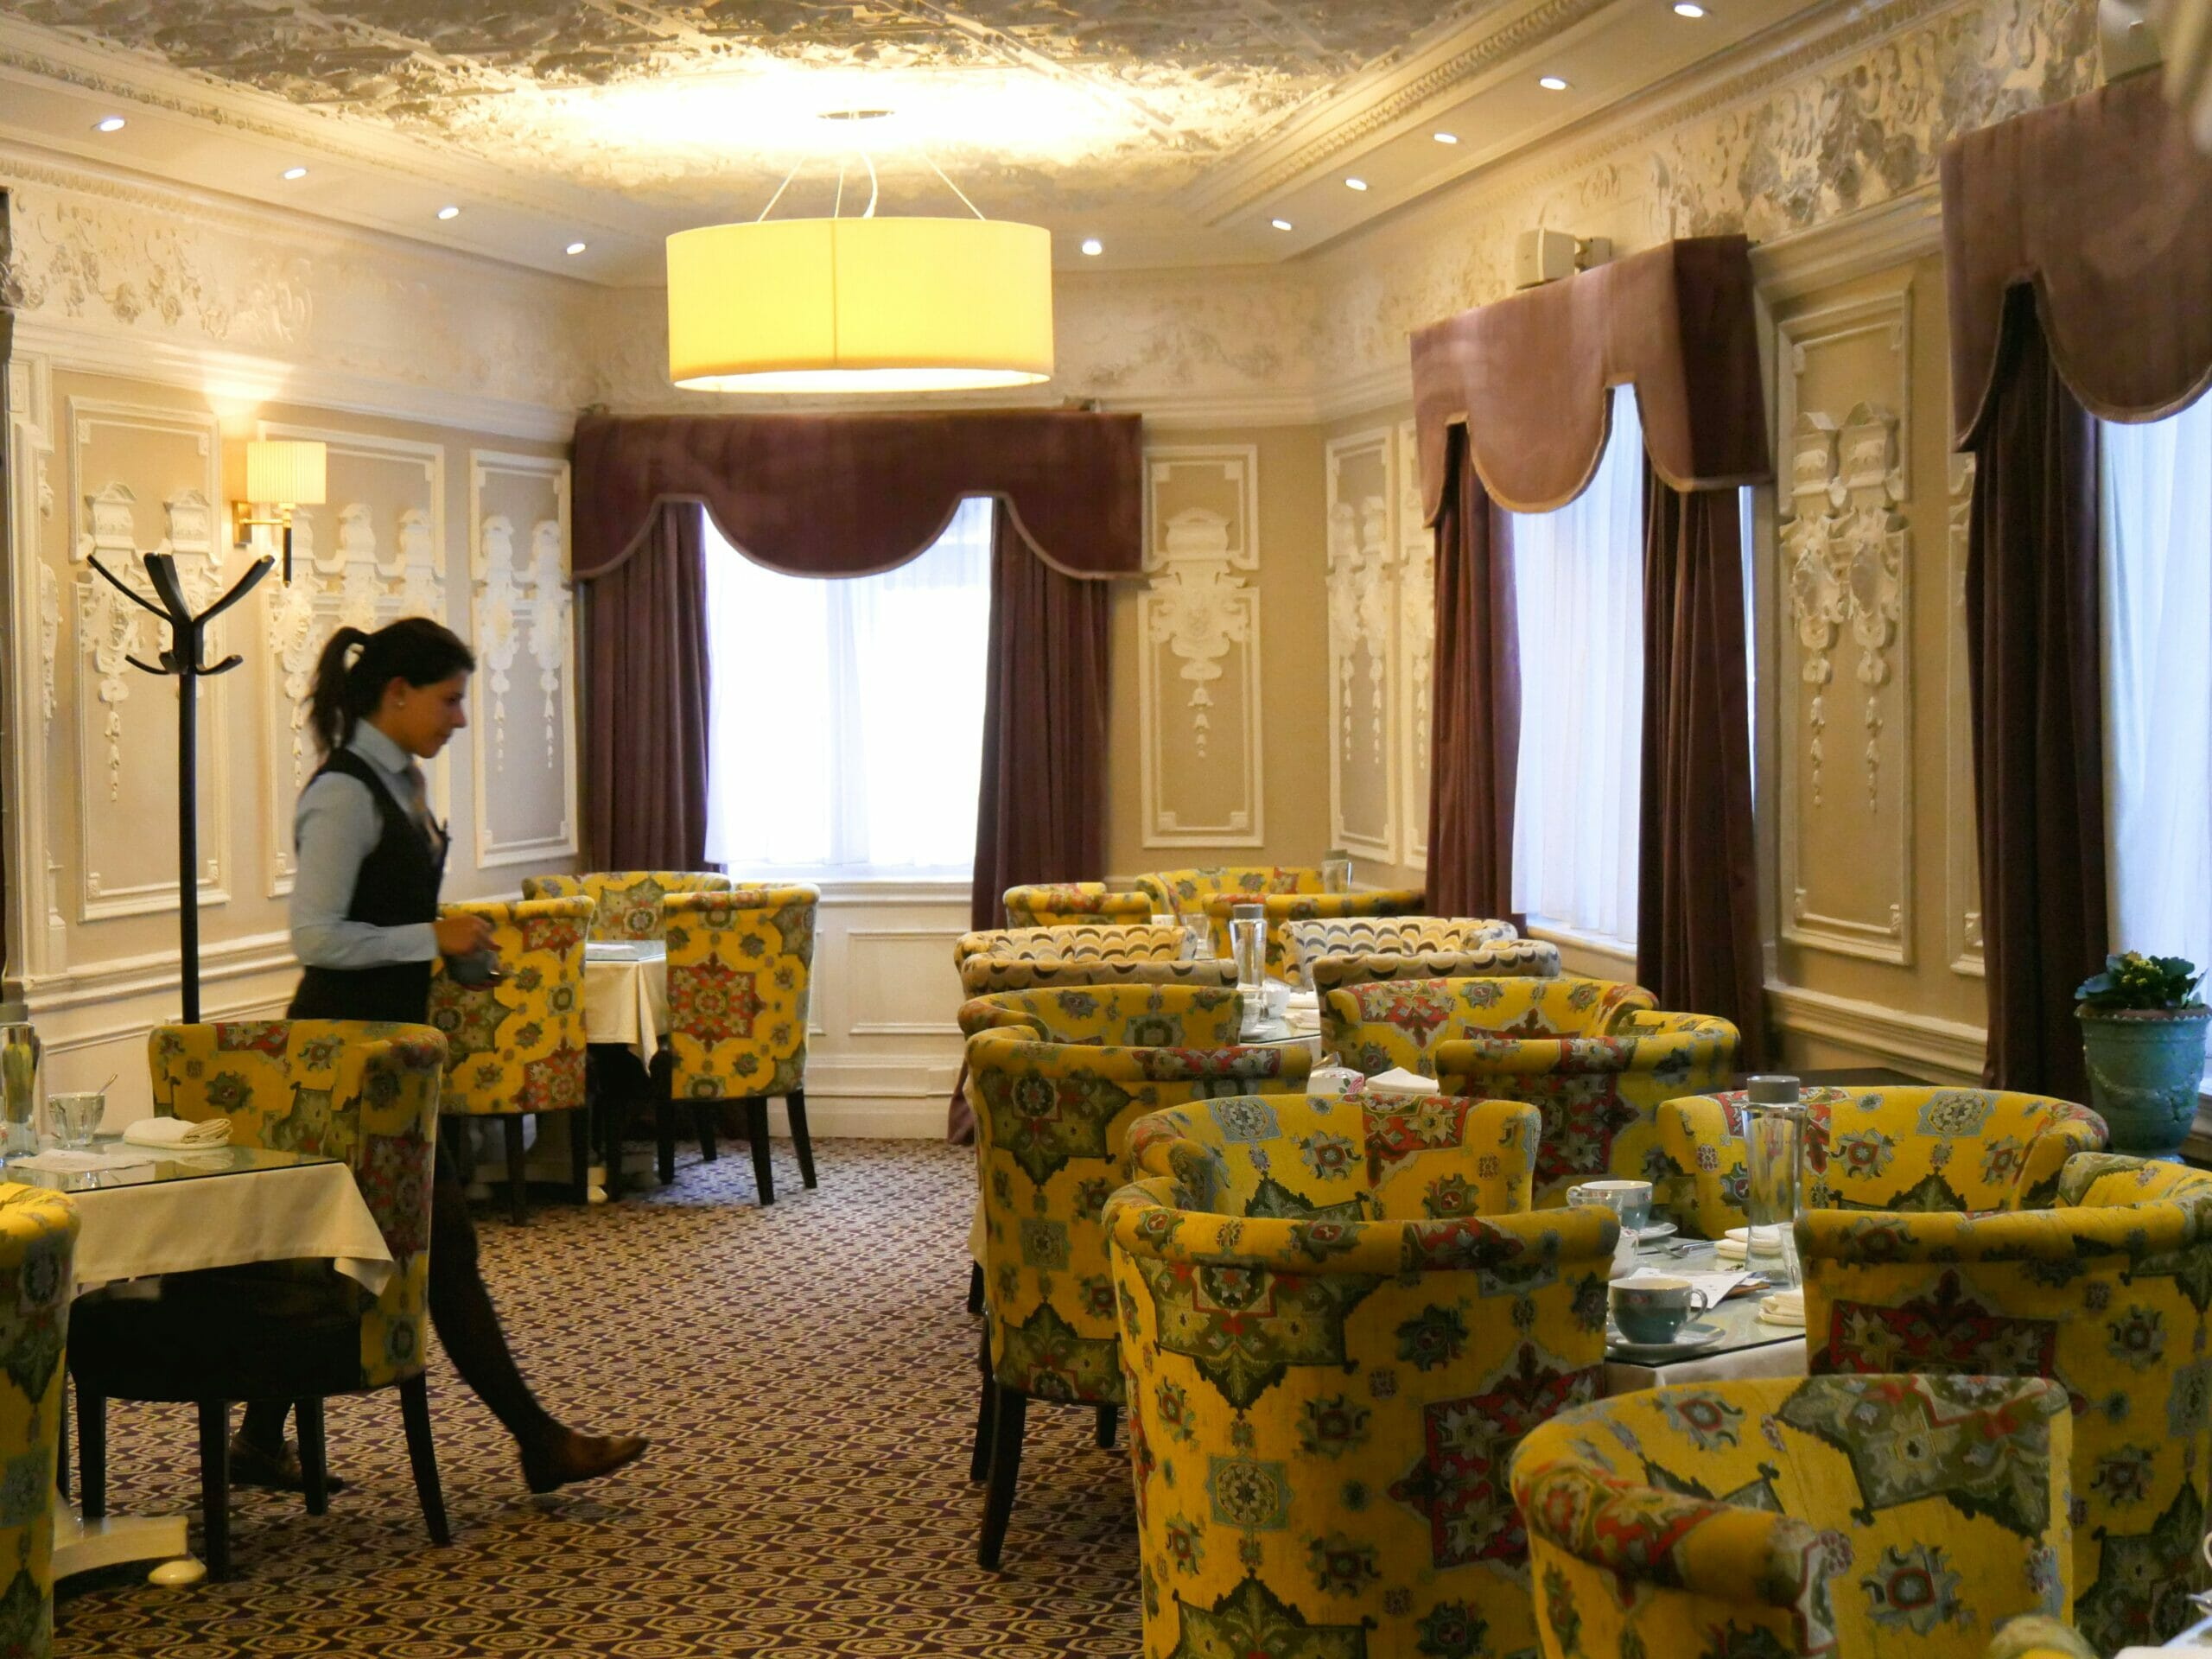 Inside of St. Ermin's Hotel with chairs and tables laid out for afternoon tea